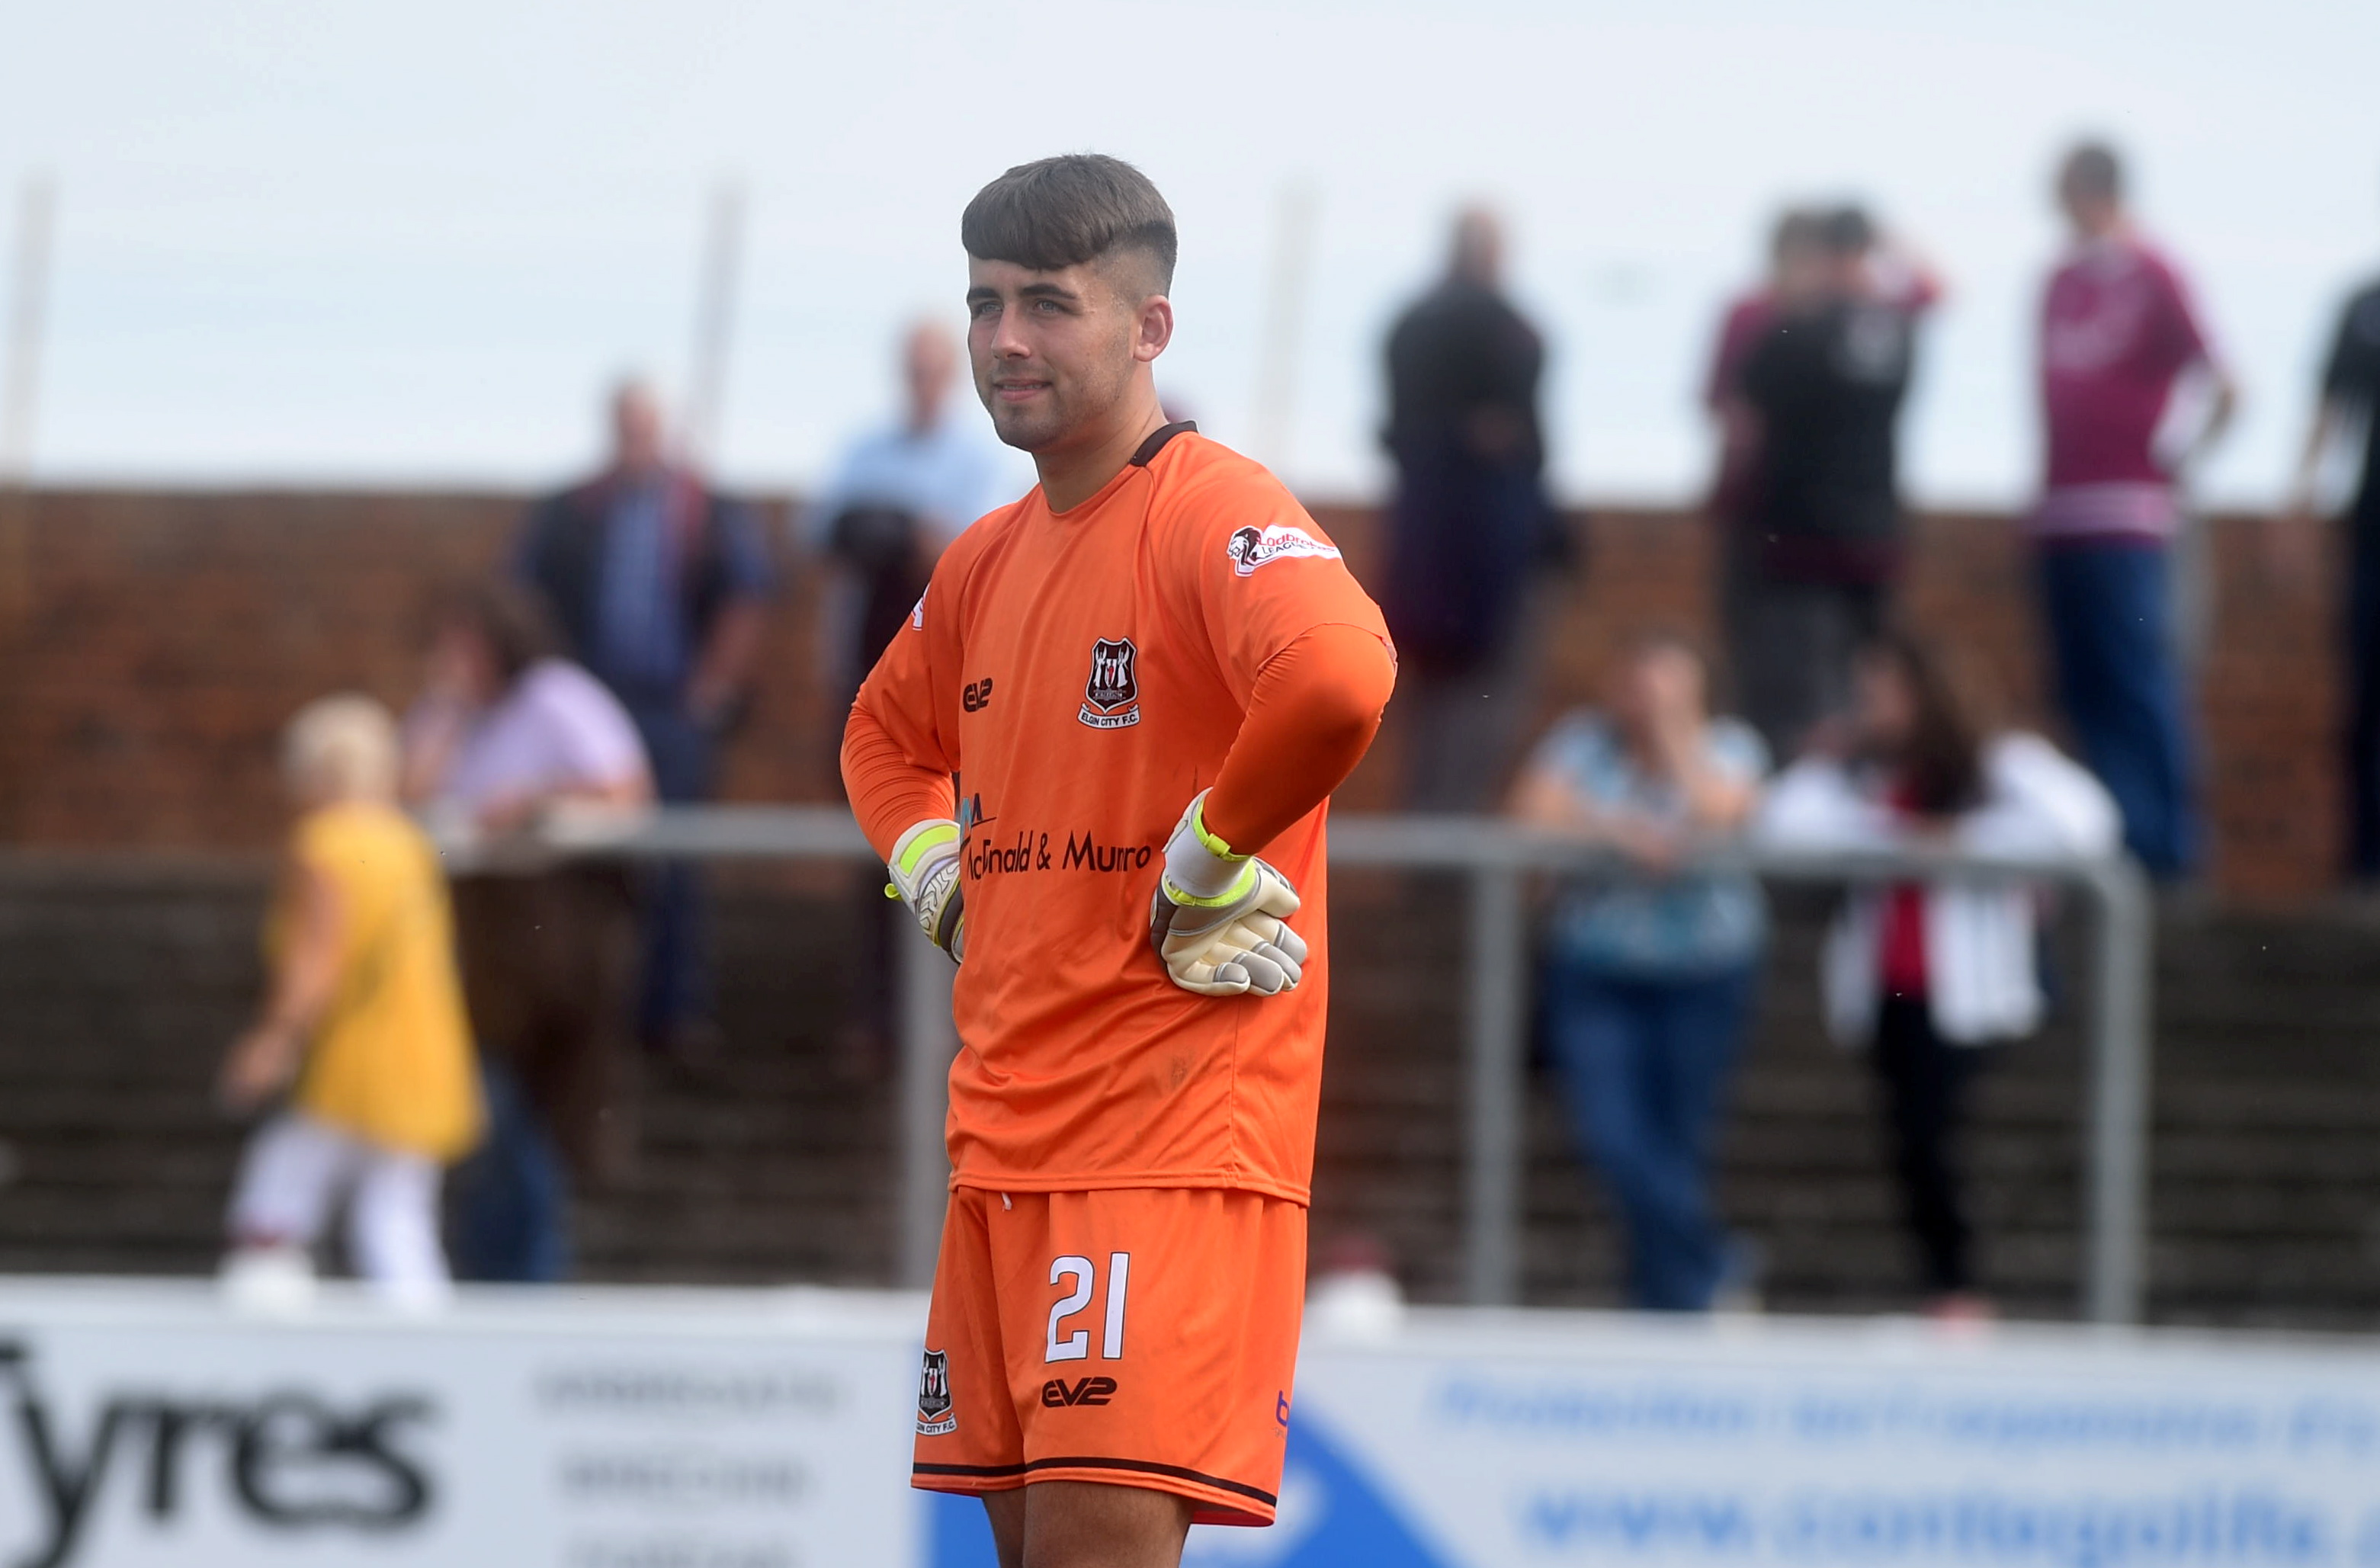 Betfred Cup Arbroath v Elgin City Gayfield Park, Arbroath Pictured is Elgin goalkeeper Kyle Gourlay Picture by DARRELL BENNS     Pictured on 21/07/2018